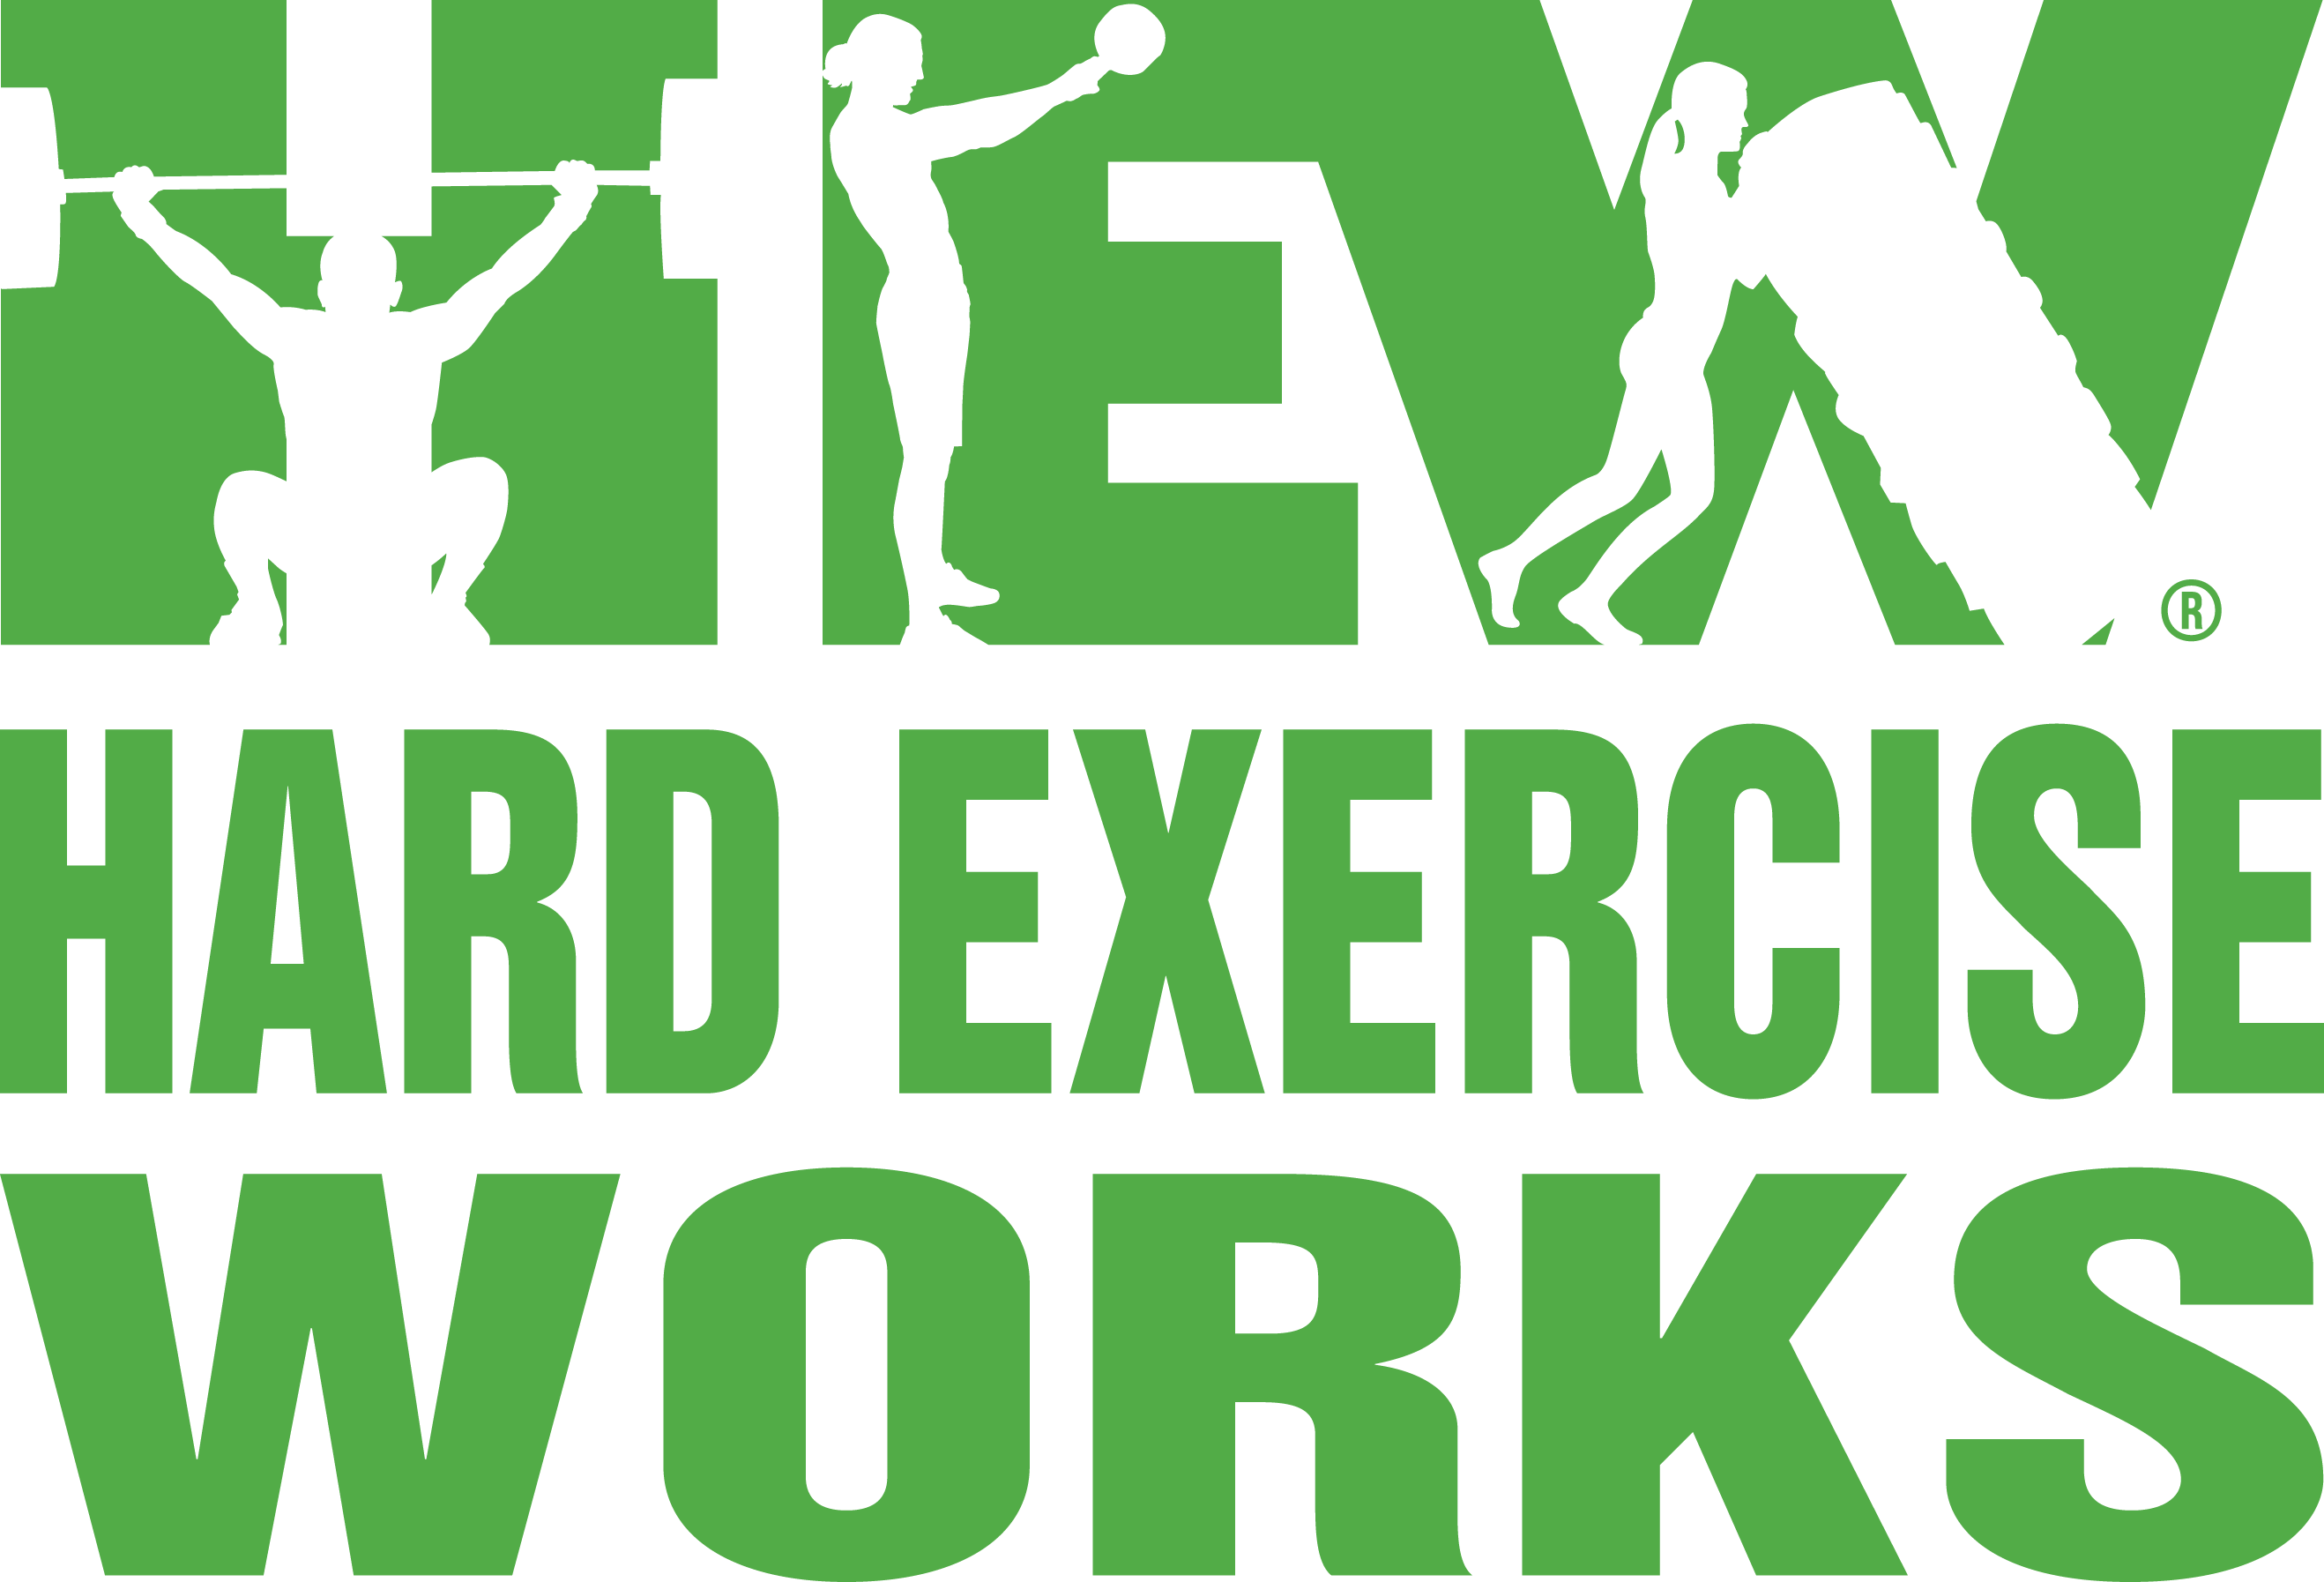 Hard Exercise Works